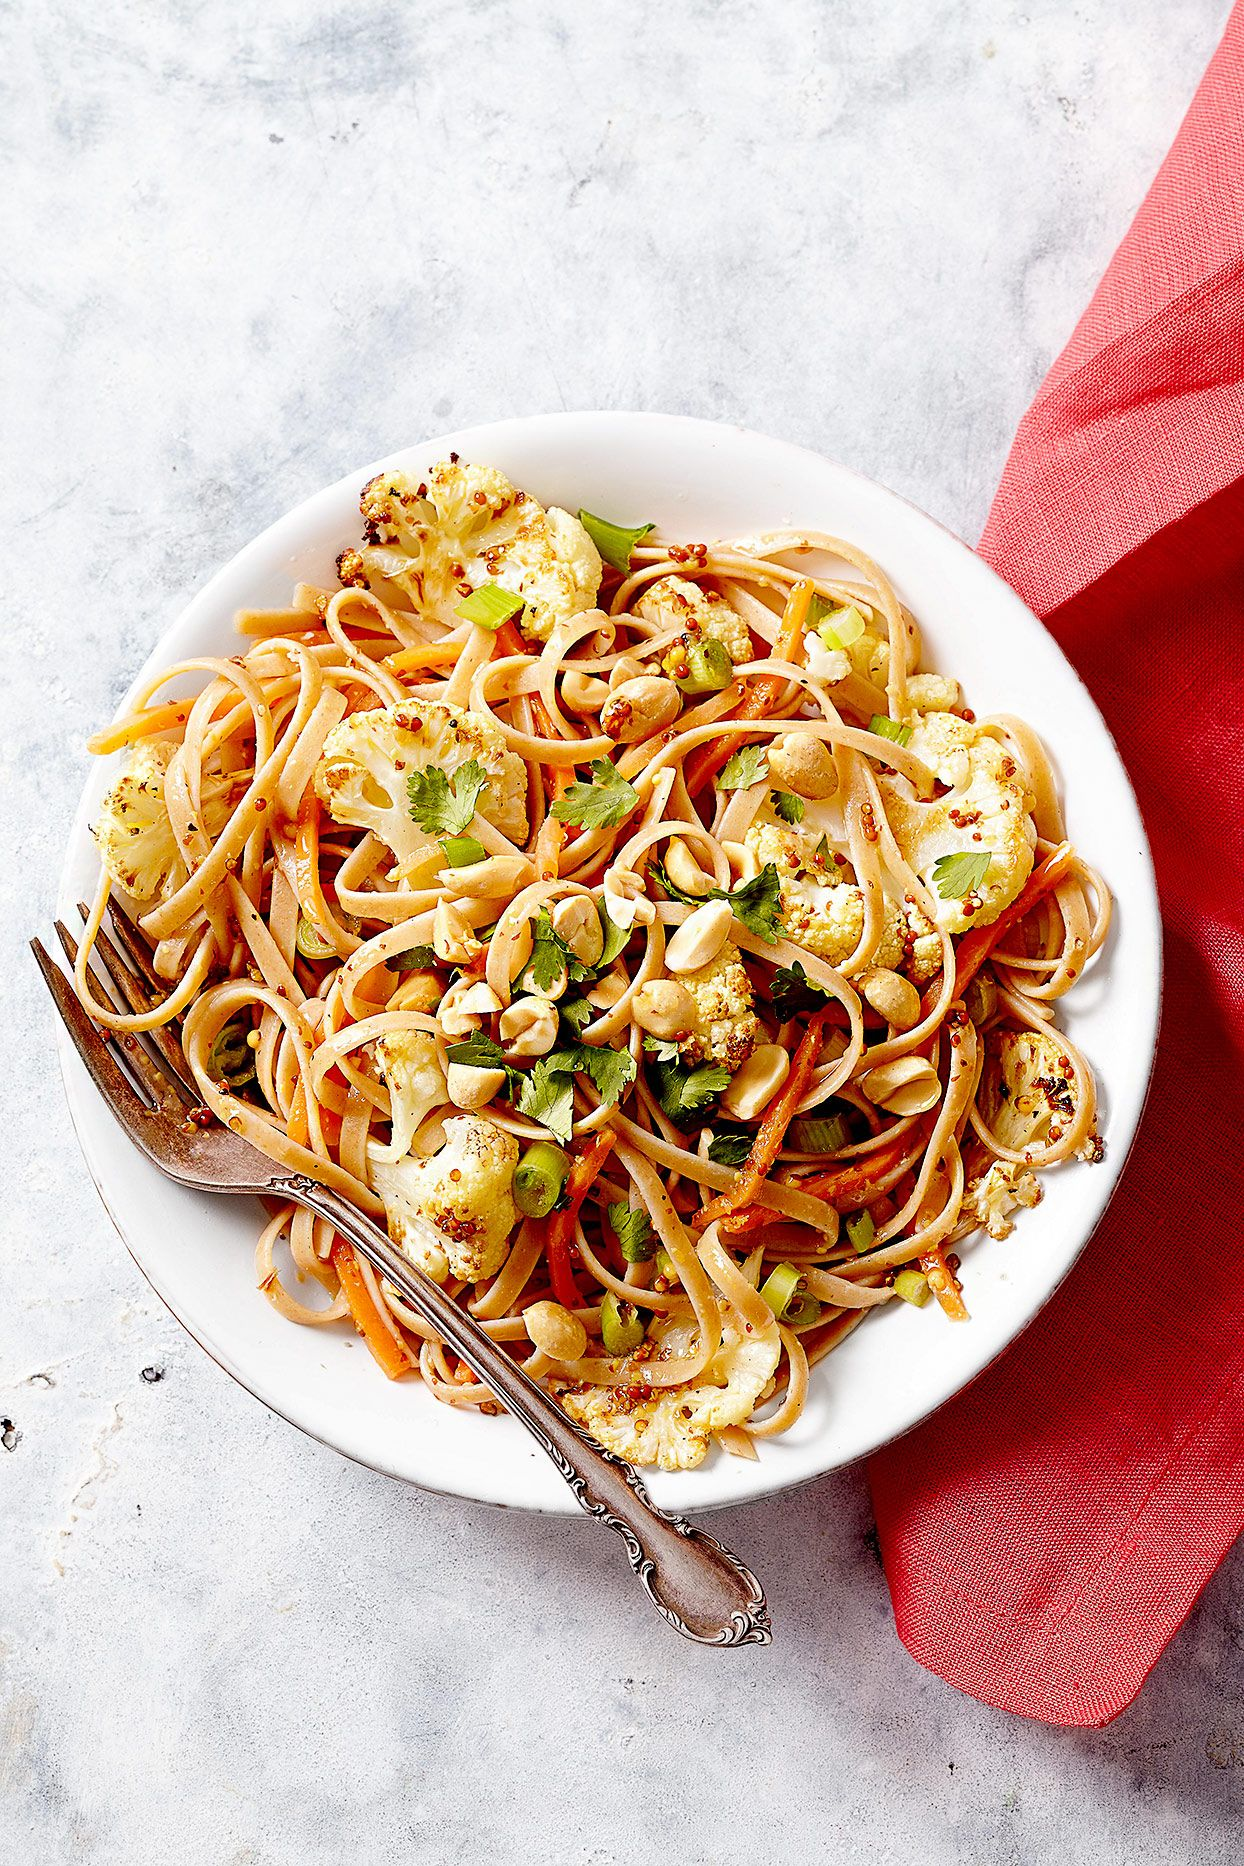 35 Healthy Dinner Recipes Under 3 In 2020 Healthy Cheap